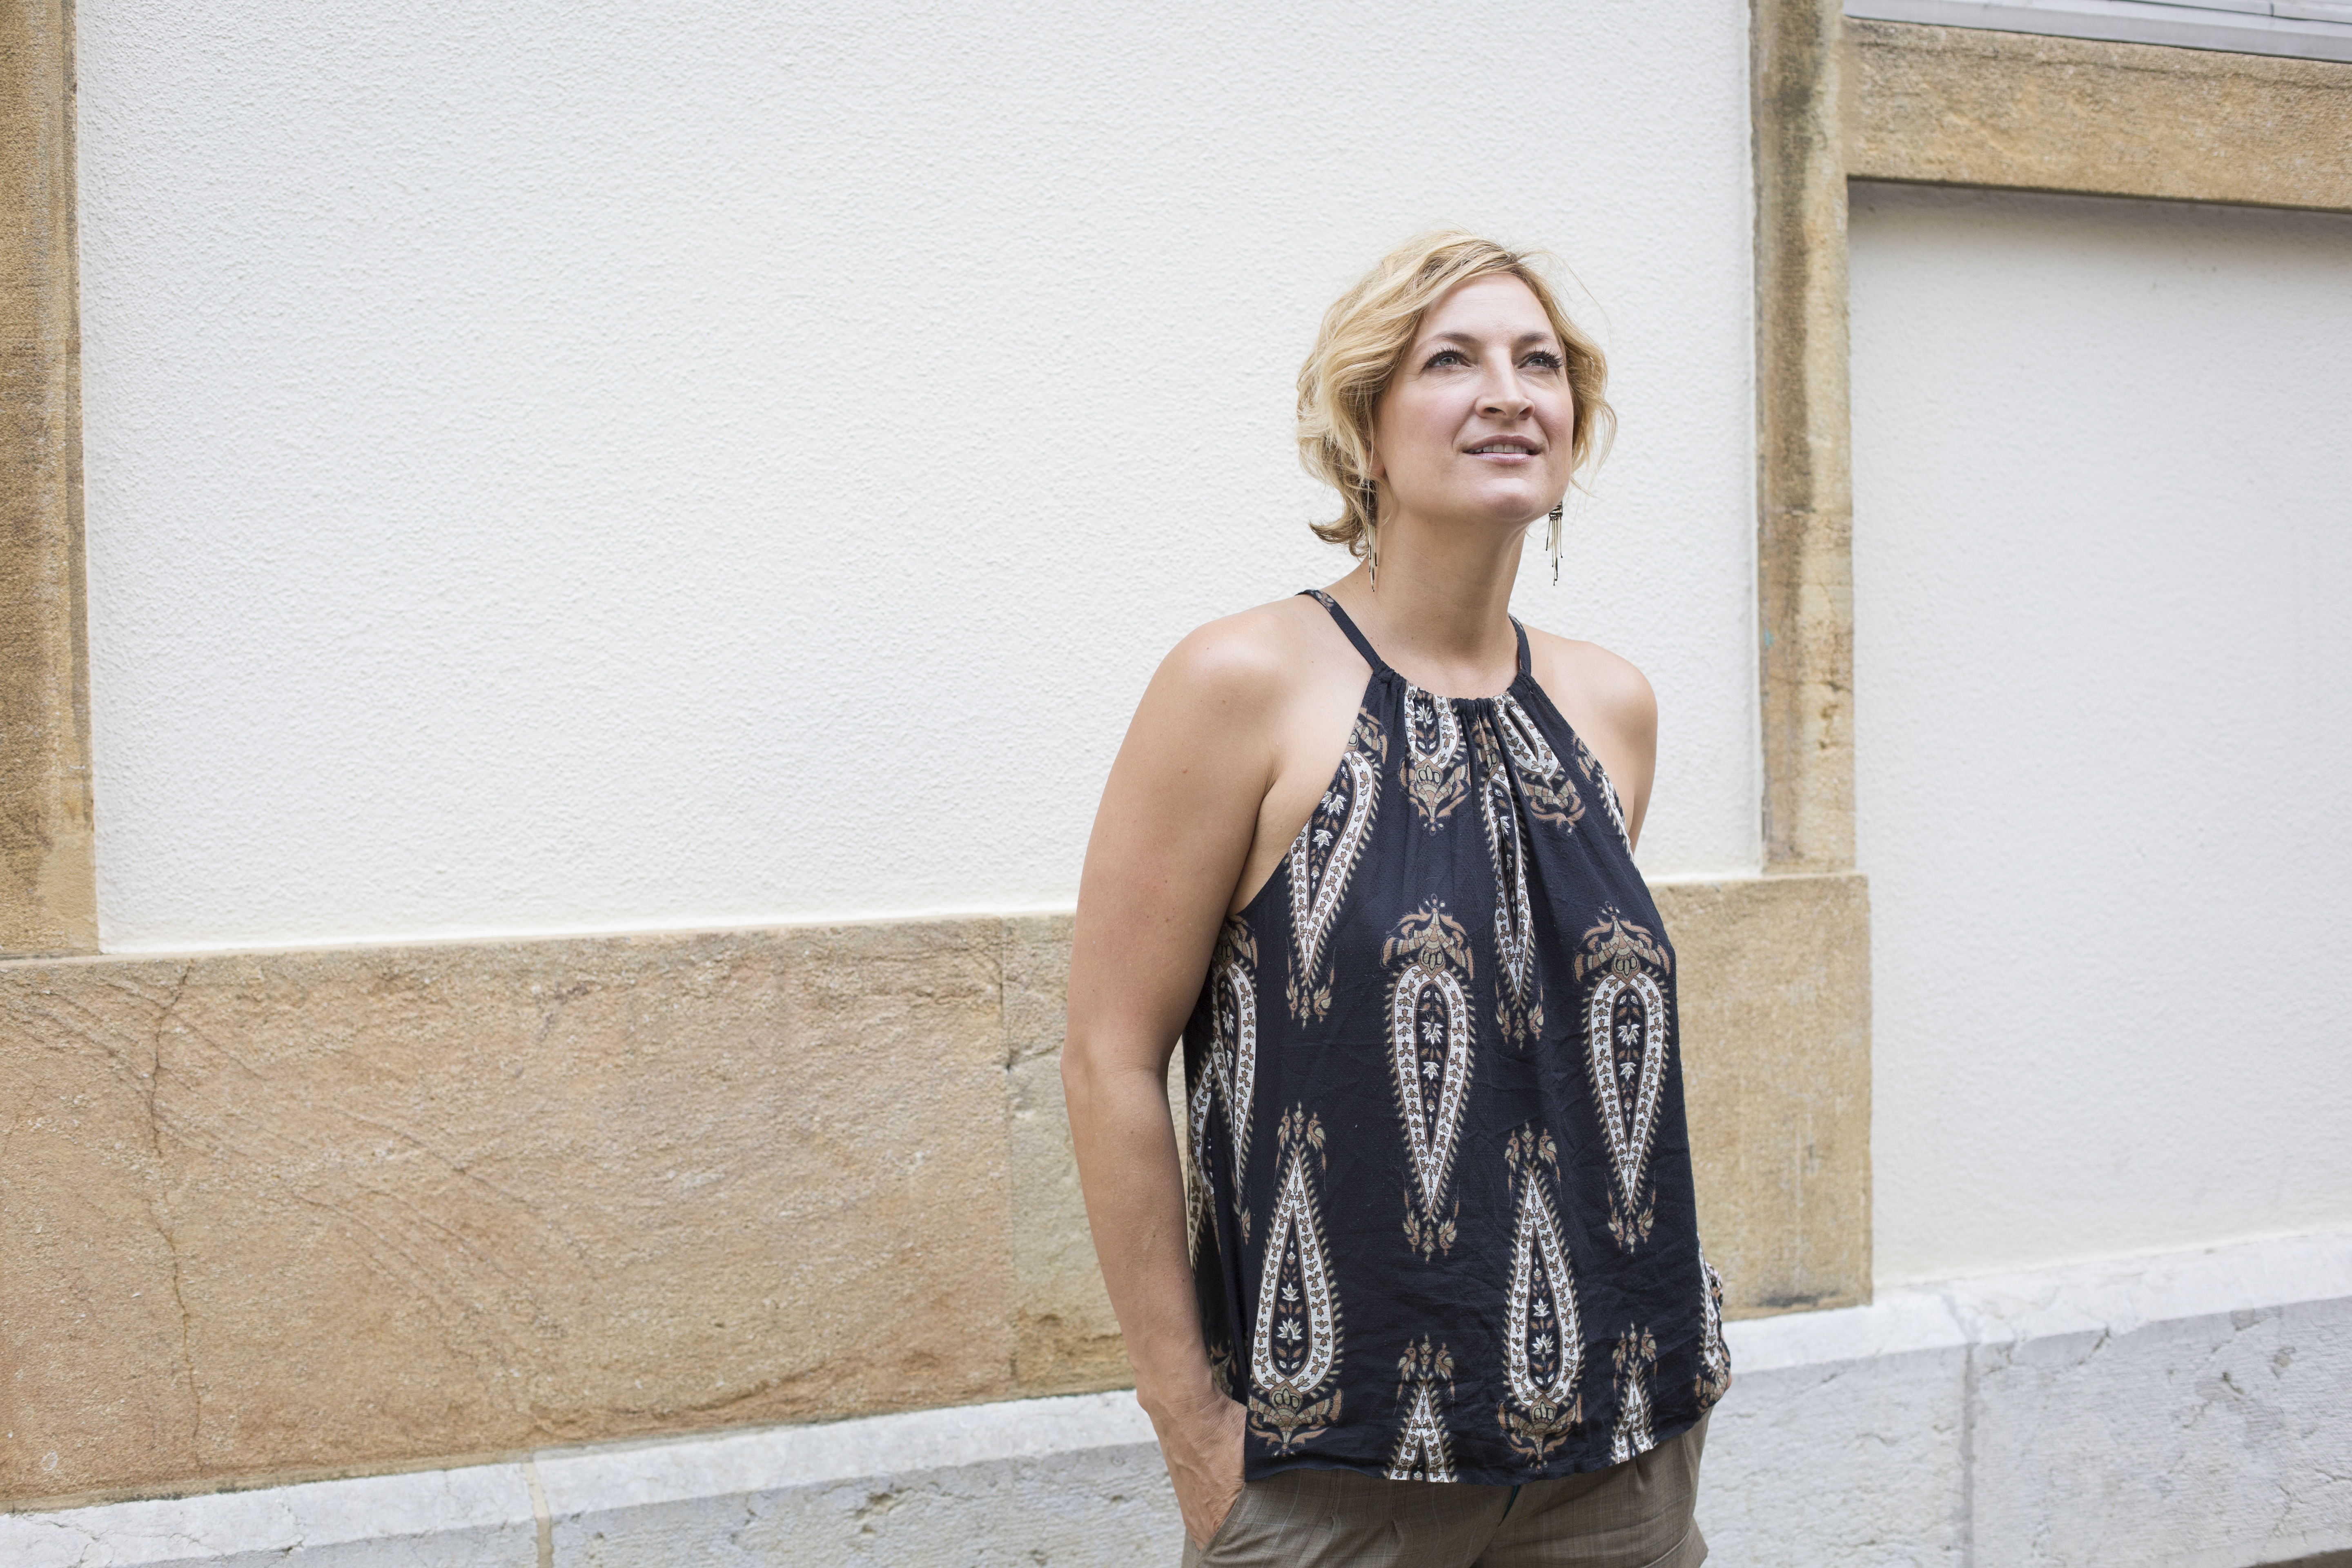 Zoë Bell, victoire aux poings